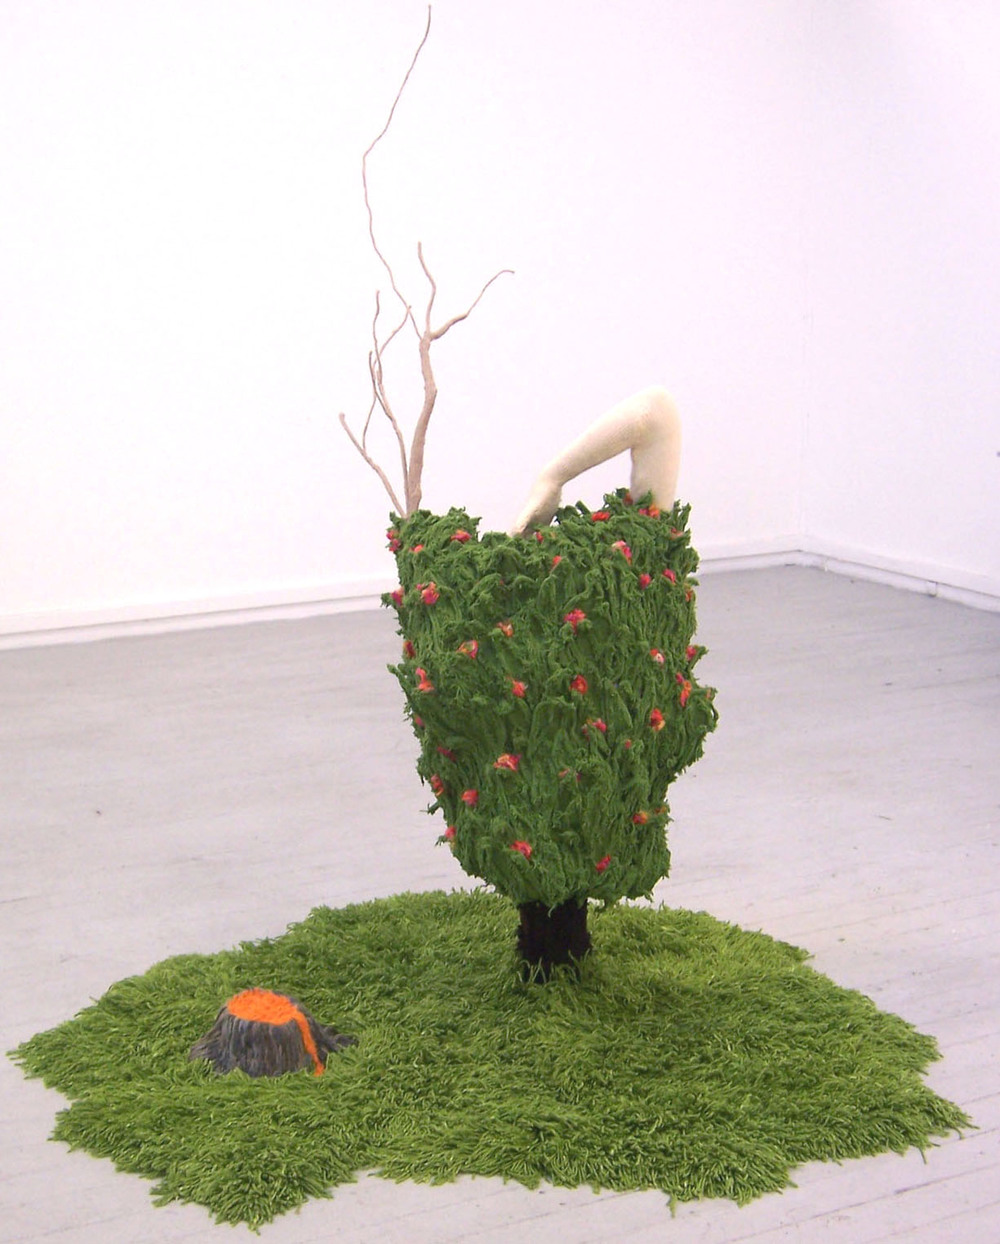 Kate Just, My Daphne, 2007 Wool, acrylic, clay, fibreglass, plastic, timber, papier mache, expanding foam, glue 160 x 80 x 80cm Documentation: Kate Just